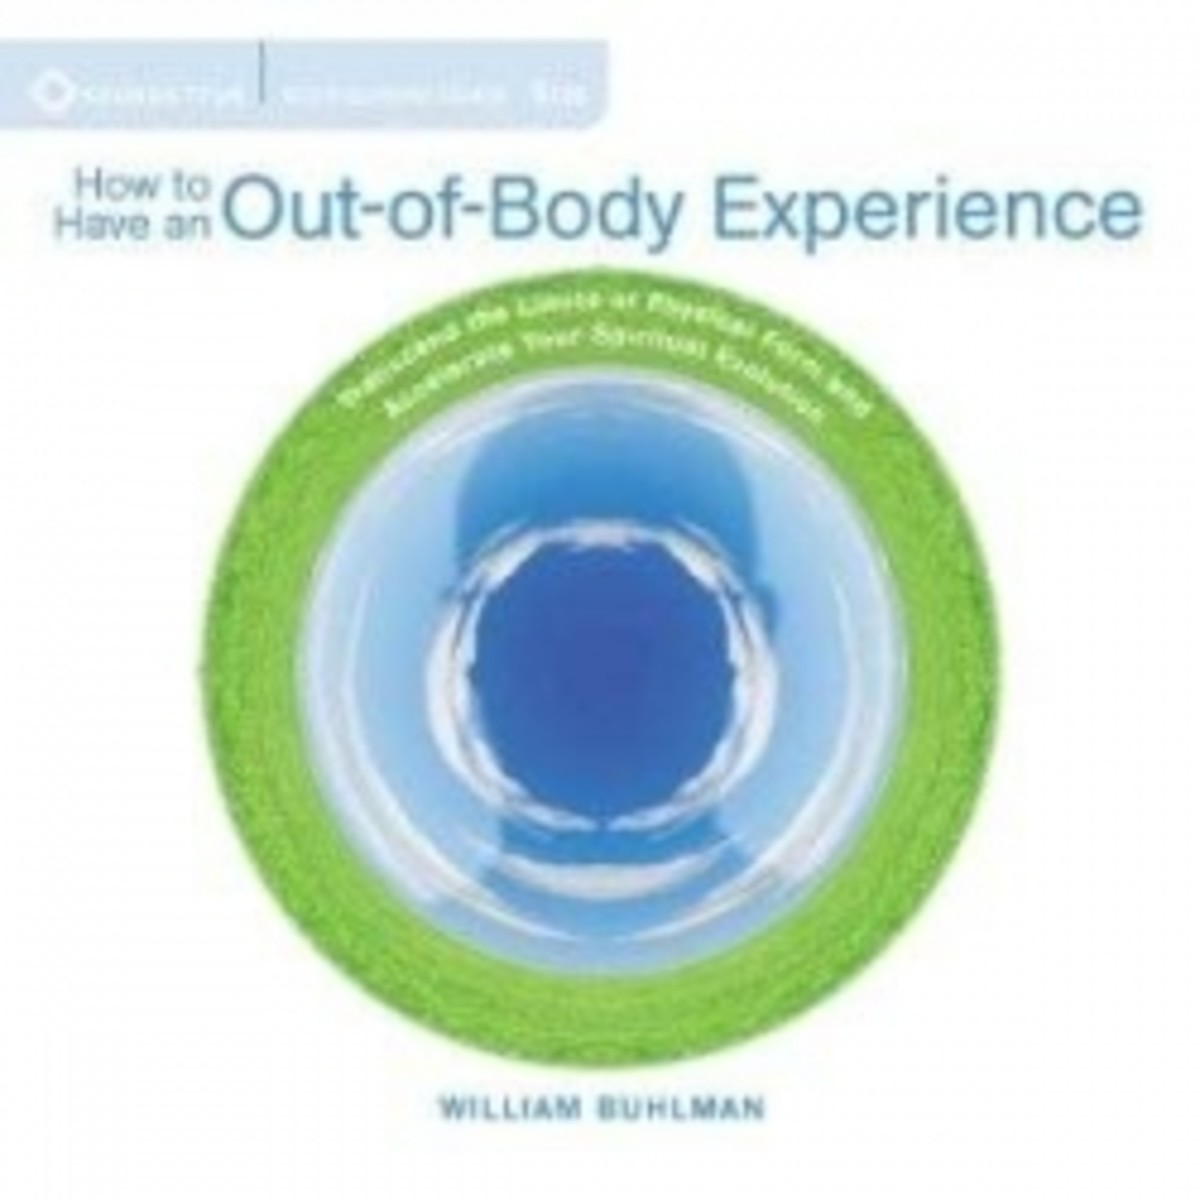 How to Have an Out-of-Body Experience by William Buhlman